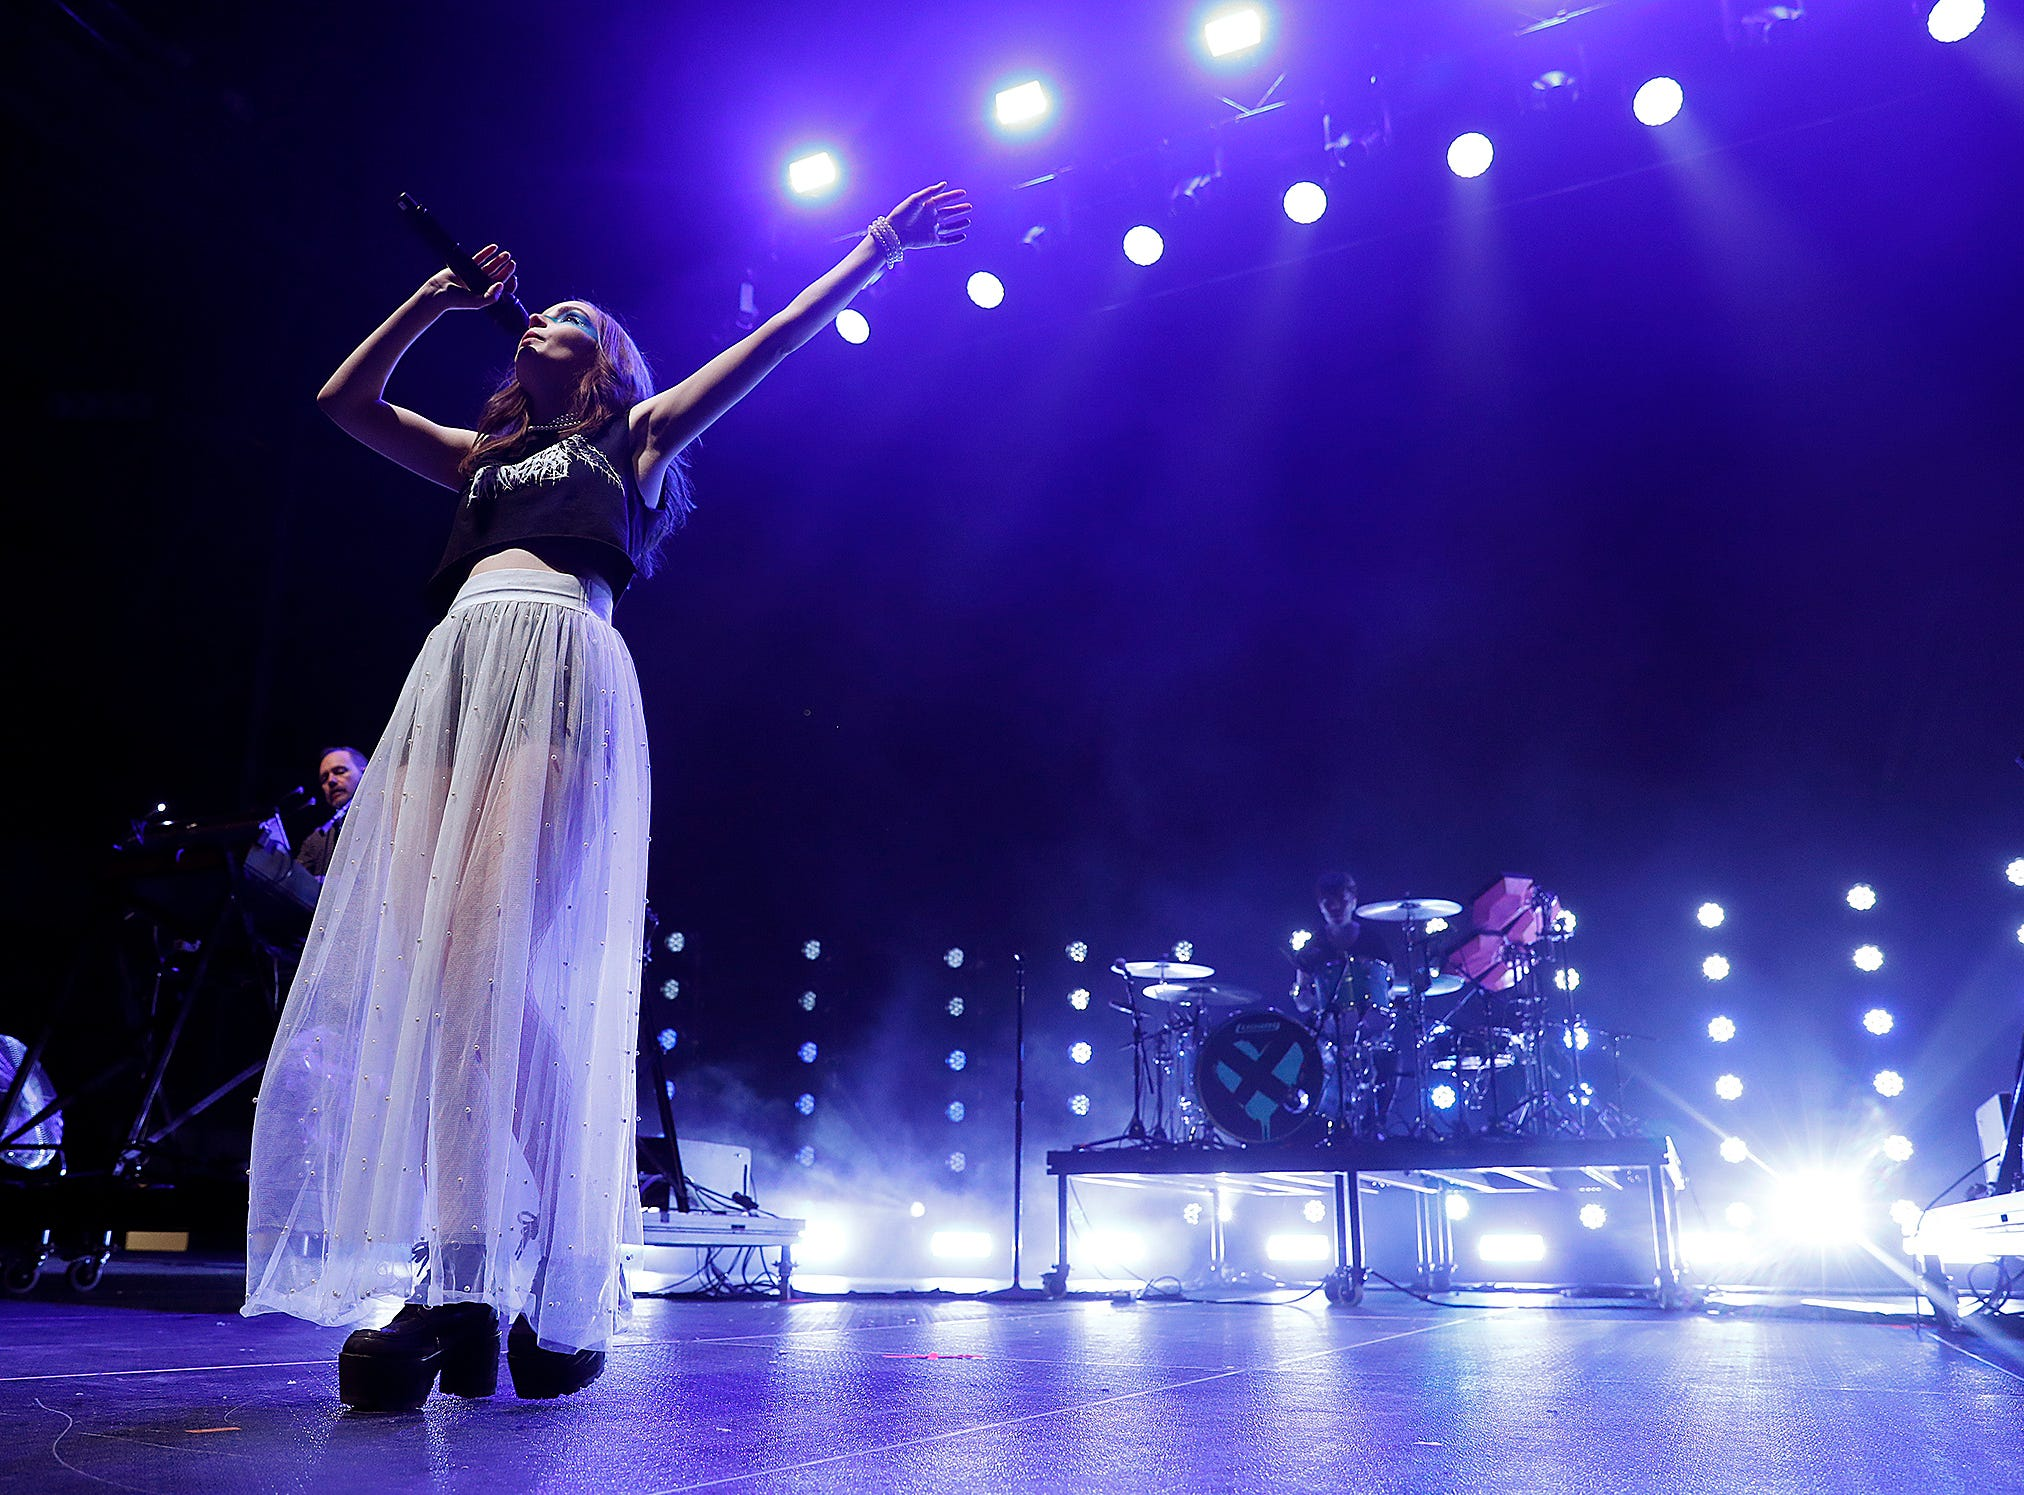 """The group Chvrches performs during the """"The Night ALT 103-3 Stole Xmas"""" concert at Indiana Farmers Coliseum on Thursday, Nov. 29, 2018."""